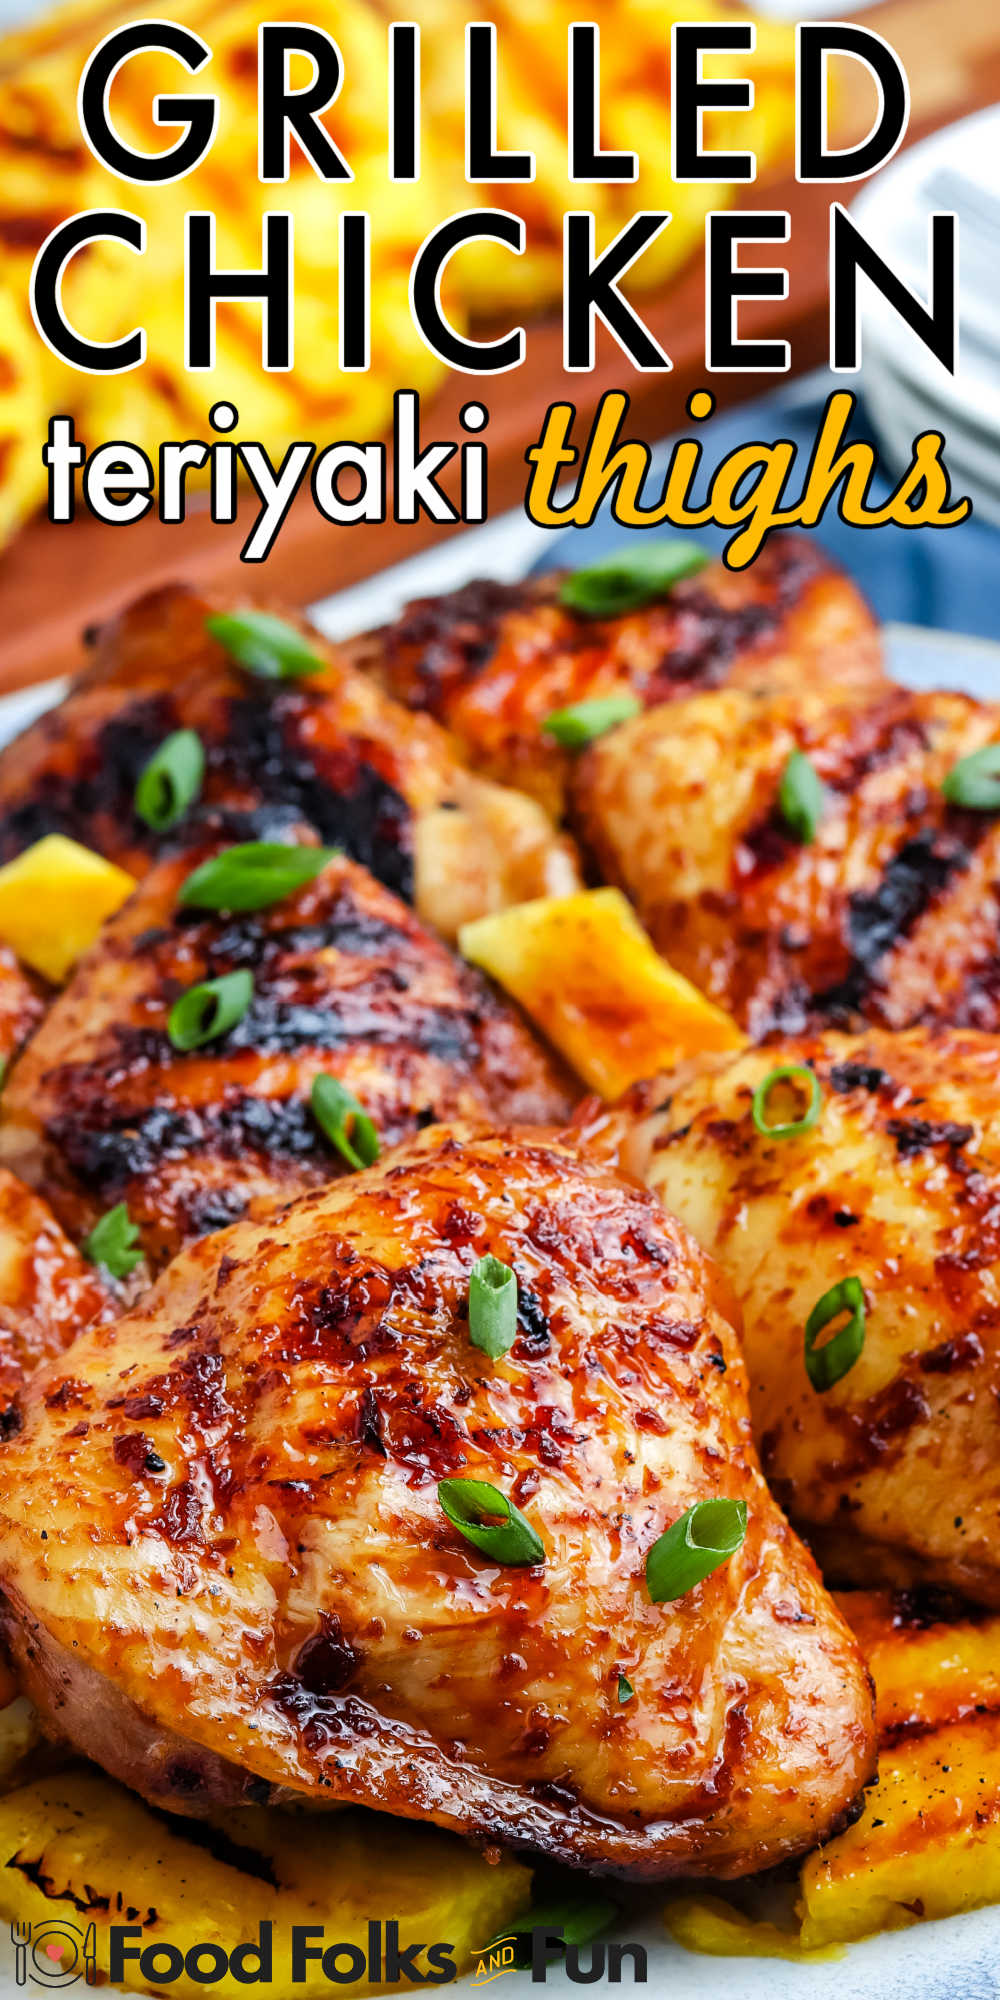 This Grilled Teriyaki Chicken Thighs recipe is juicy and loaded with tangy-sweet teriyaki flavor that is irresistible. This dish is perfect for weeknight dinners and backyard barbecues.  via @foodfolksandfun